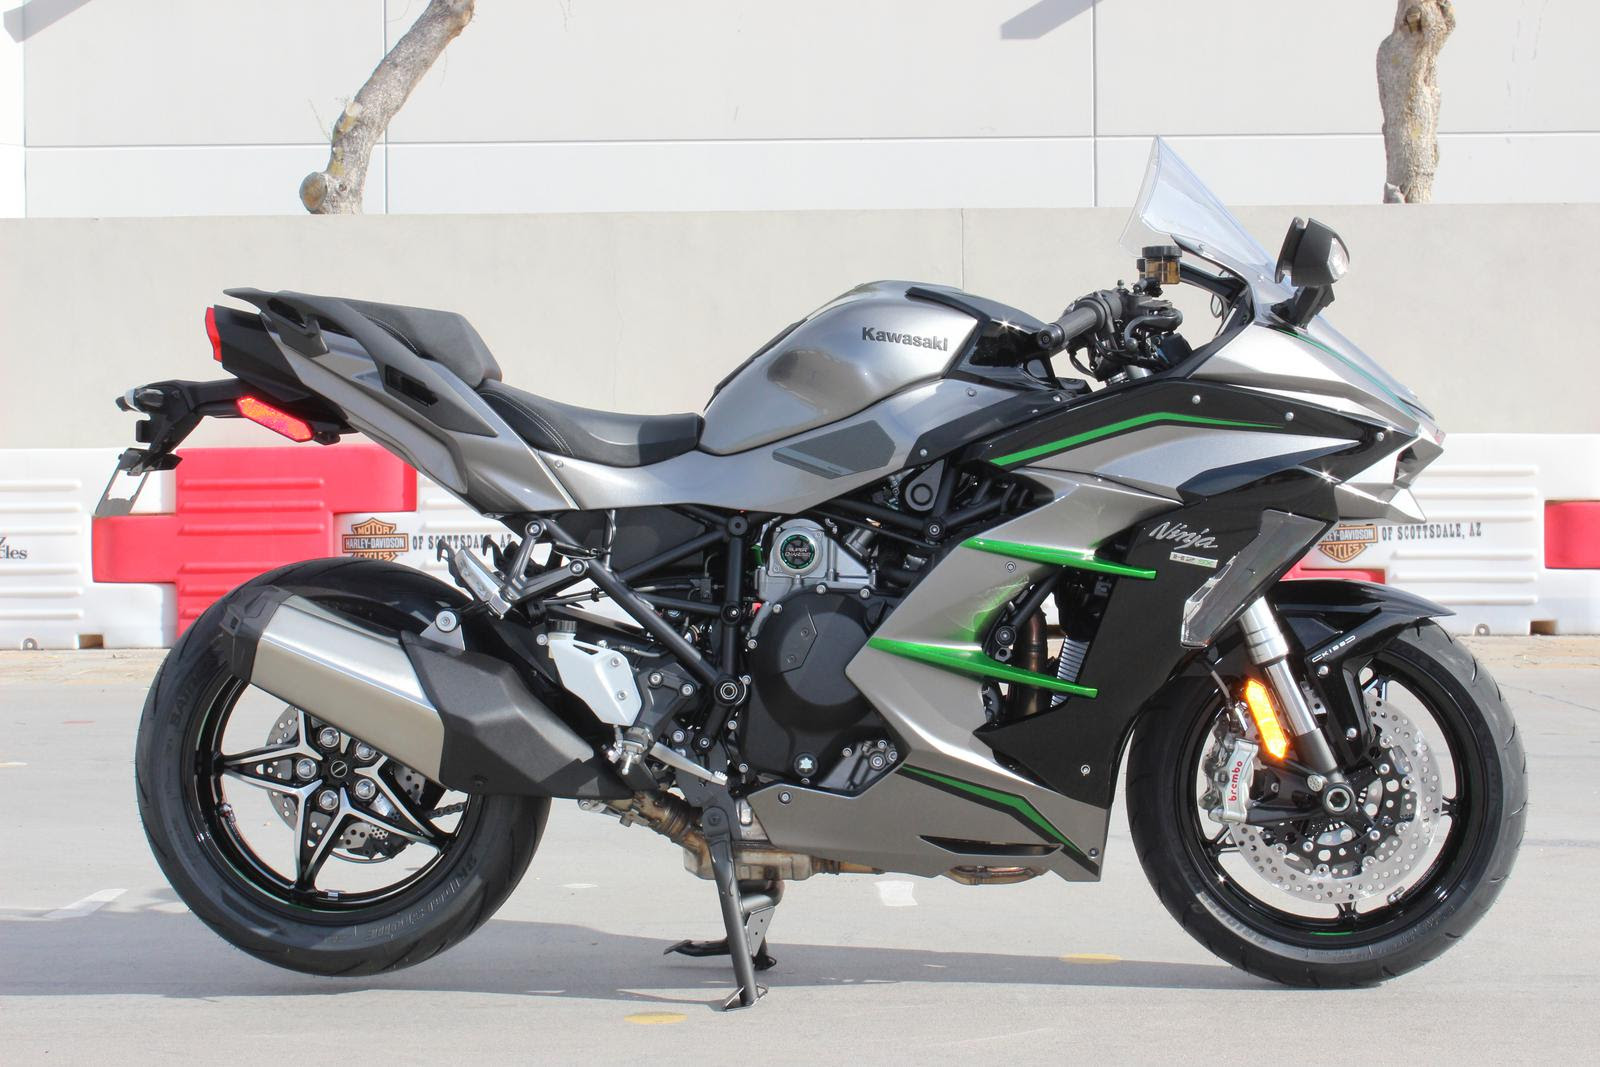 2019 Kawasaki Ninja H2 Sx Se For Sale In Scottsdale Az